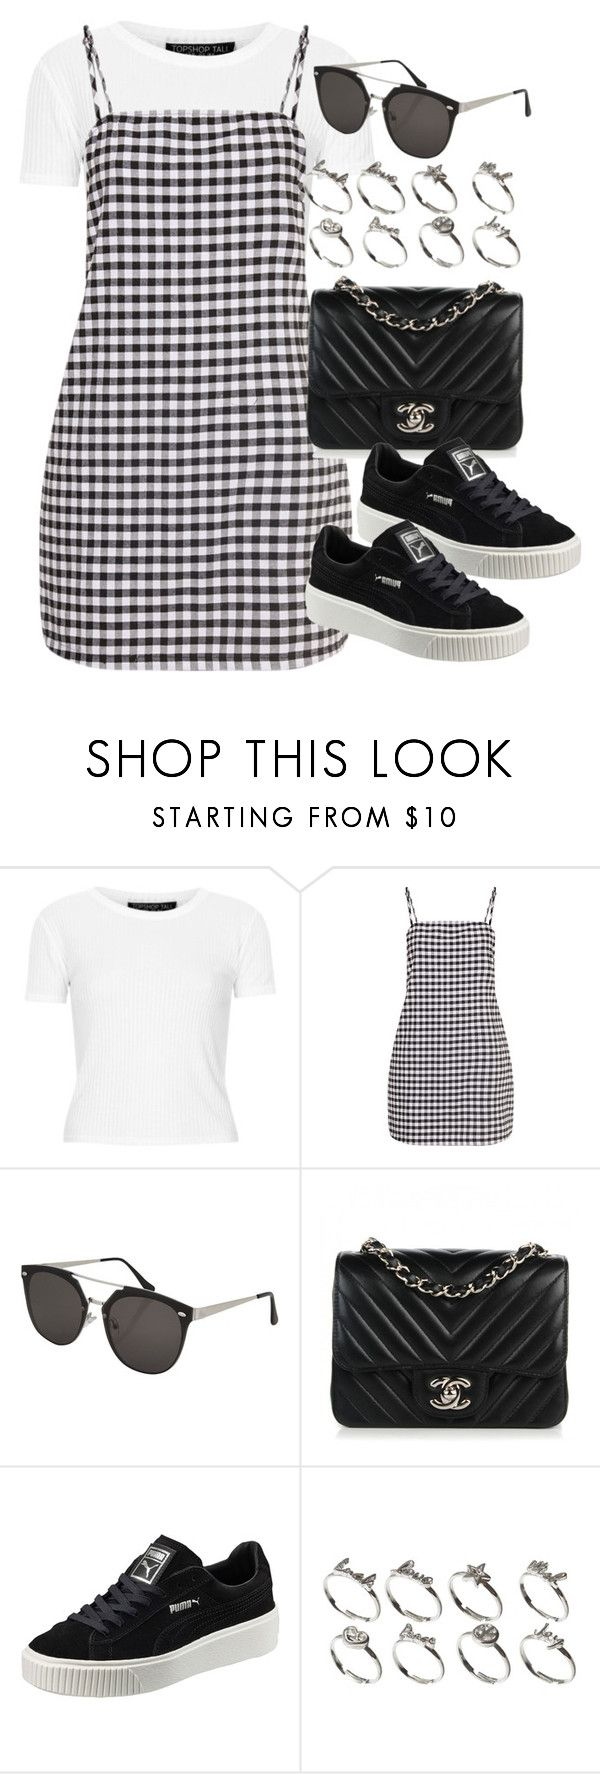 """""""Sin título #12654"""" by vany-alvarado ❤ liked on Polyvore featuring Topshop, Chanel, Puma and ASOS"""